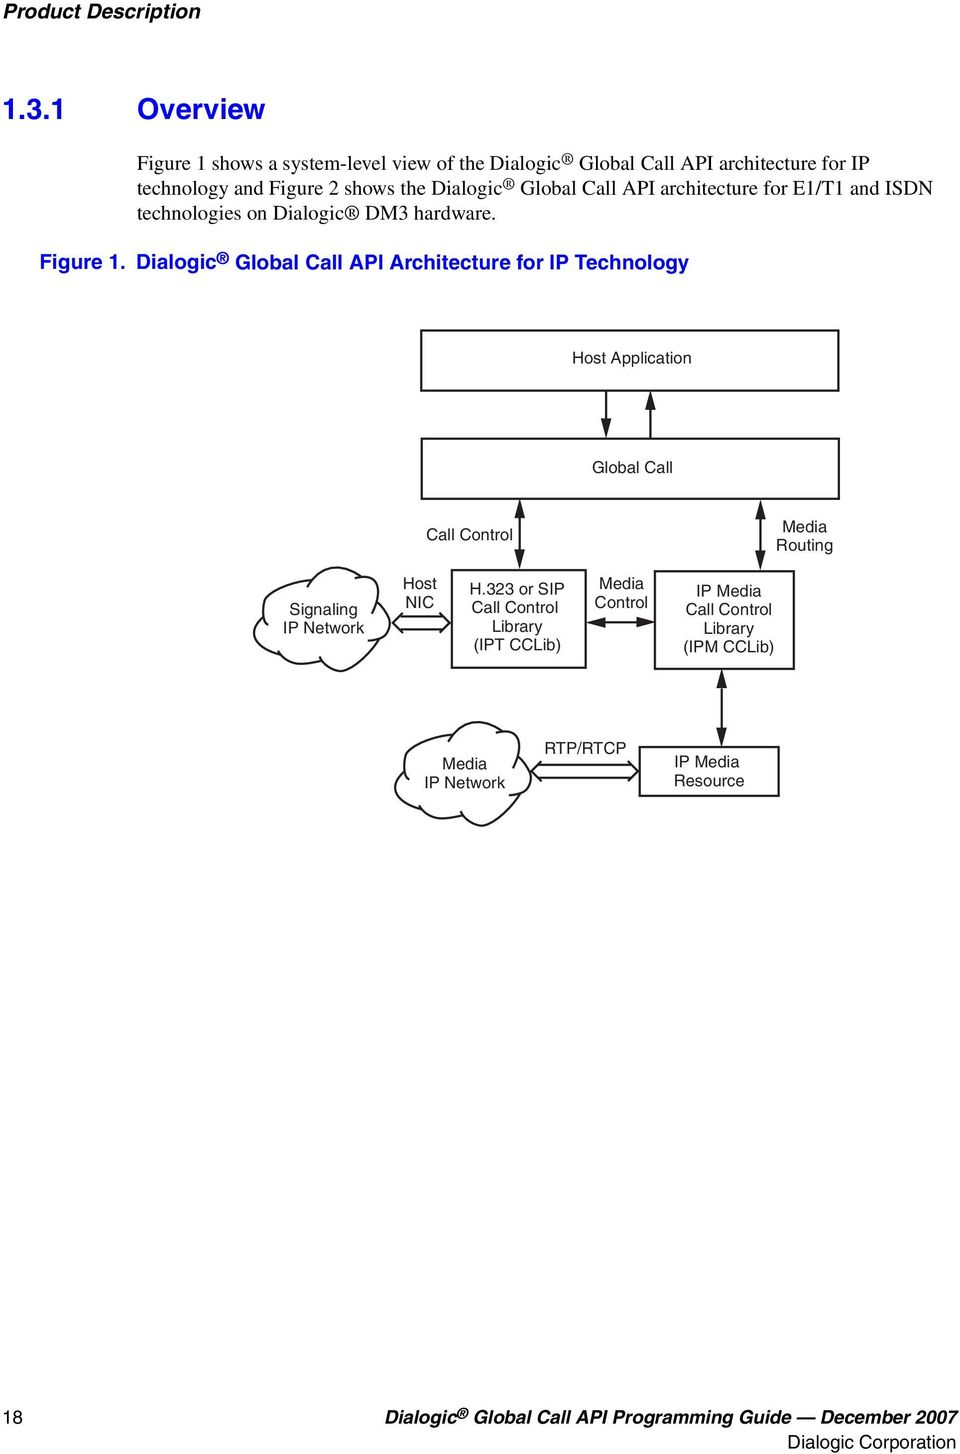 API architecture for E1/T1 and ISDN technologies on Dialogic DM3 hardware. Figure 1.